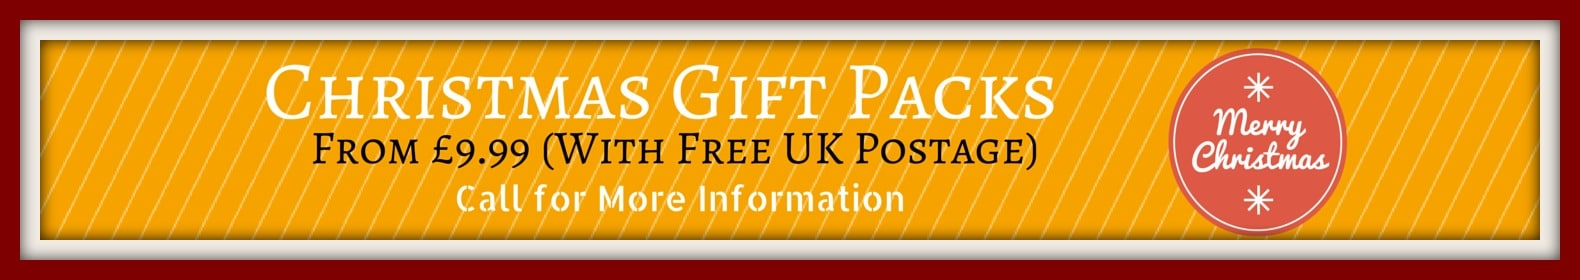 Christmas Gift Packs2a